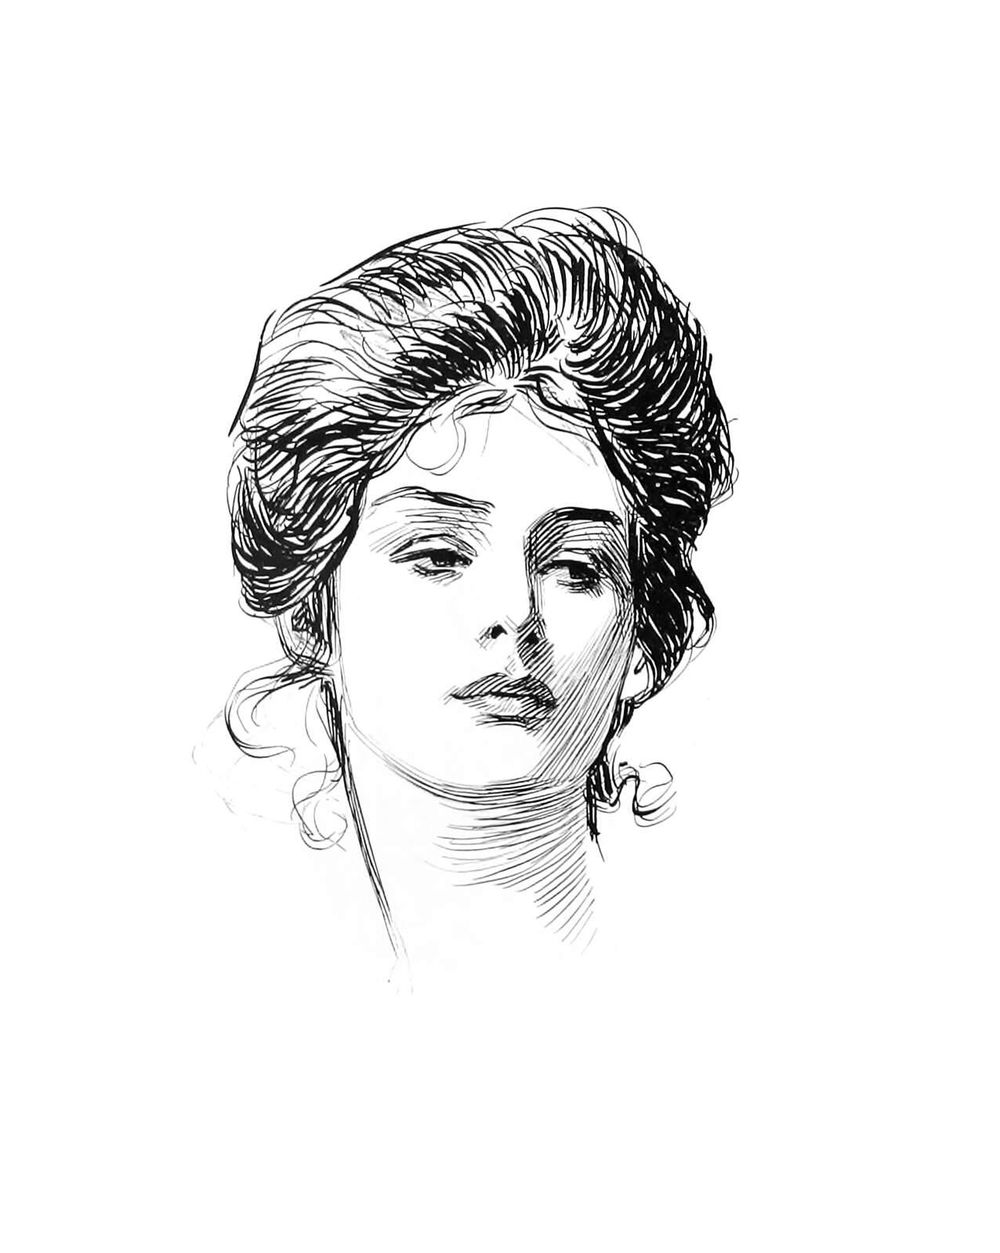 A Lady in Summer - image 2 - student project